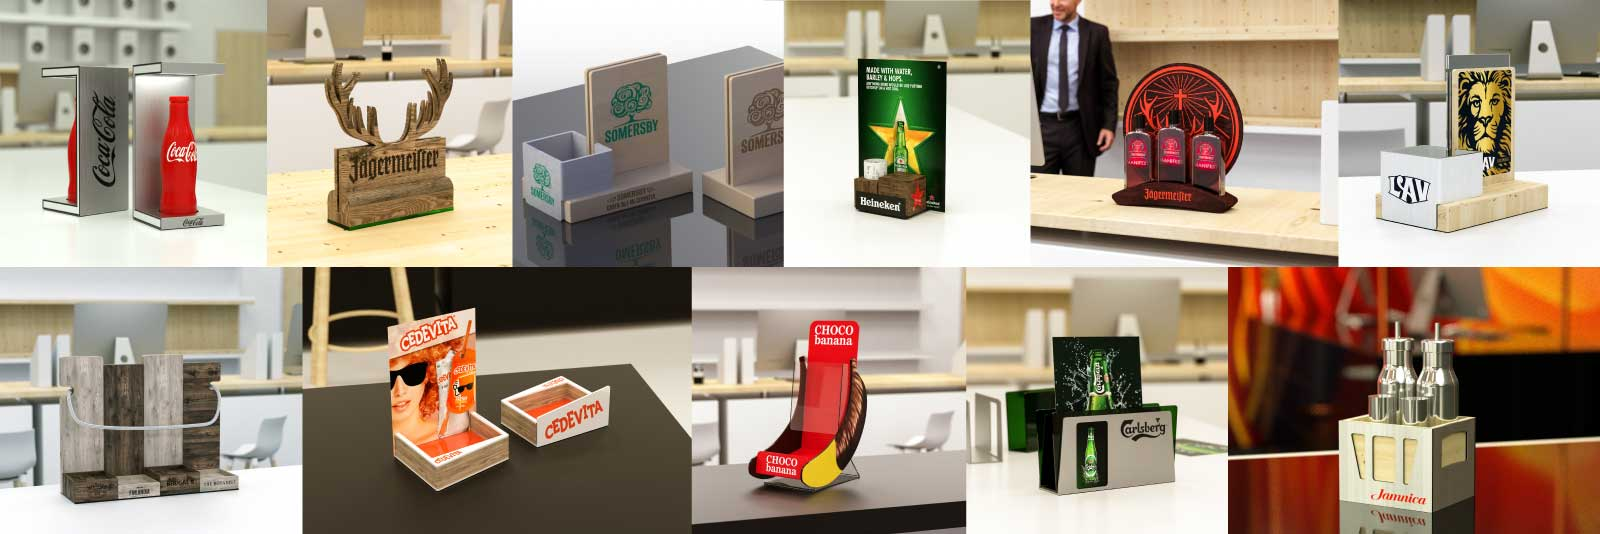 Balboa, design and production POS products, bottle presenters, promo products.